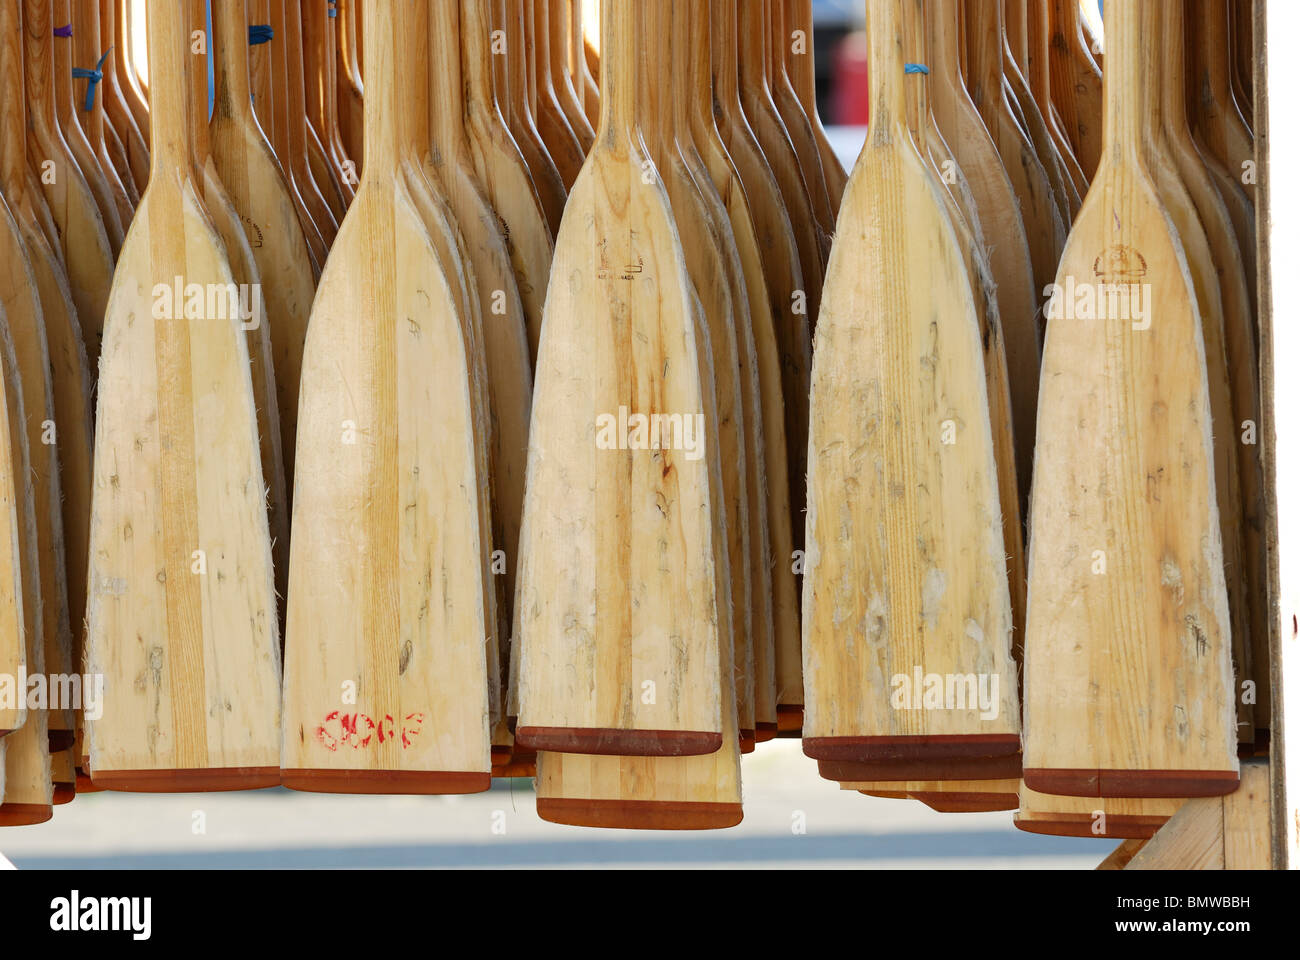 Dozens of wooden paddles hang from a rack waiting to be used in the annual Dragon Boat festival in the City of Vancouver - Stock Image